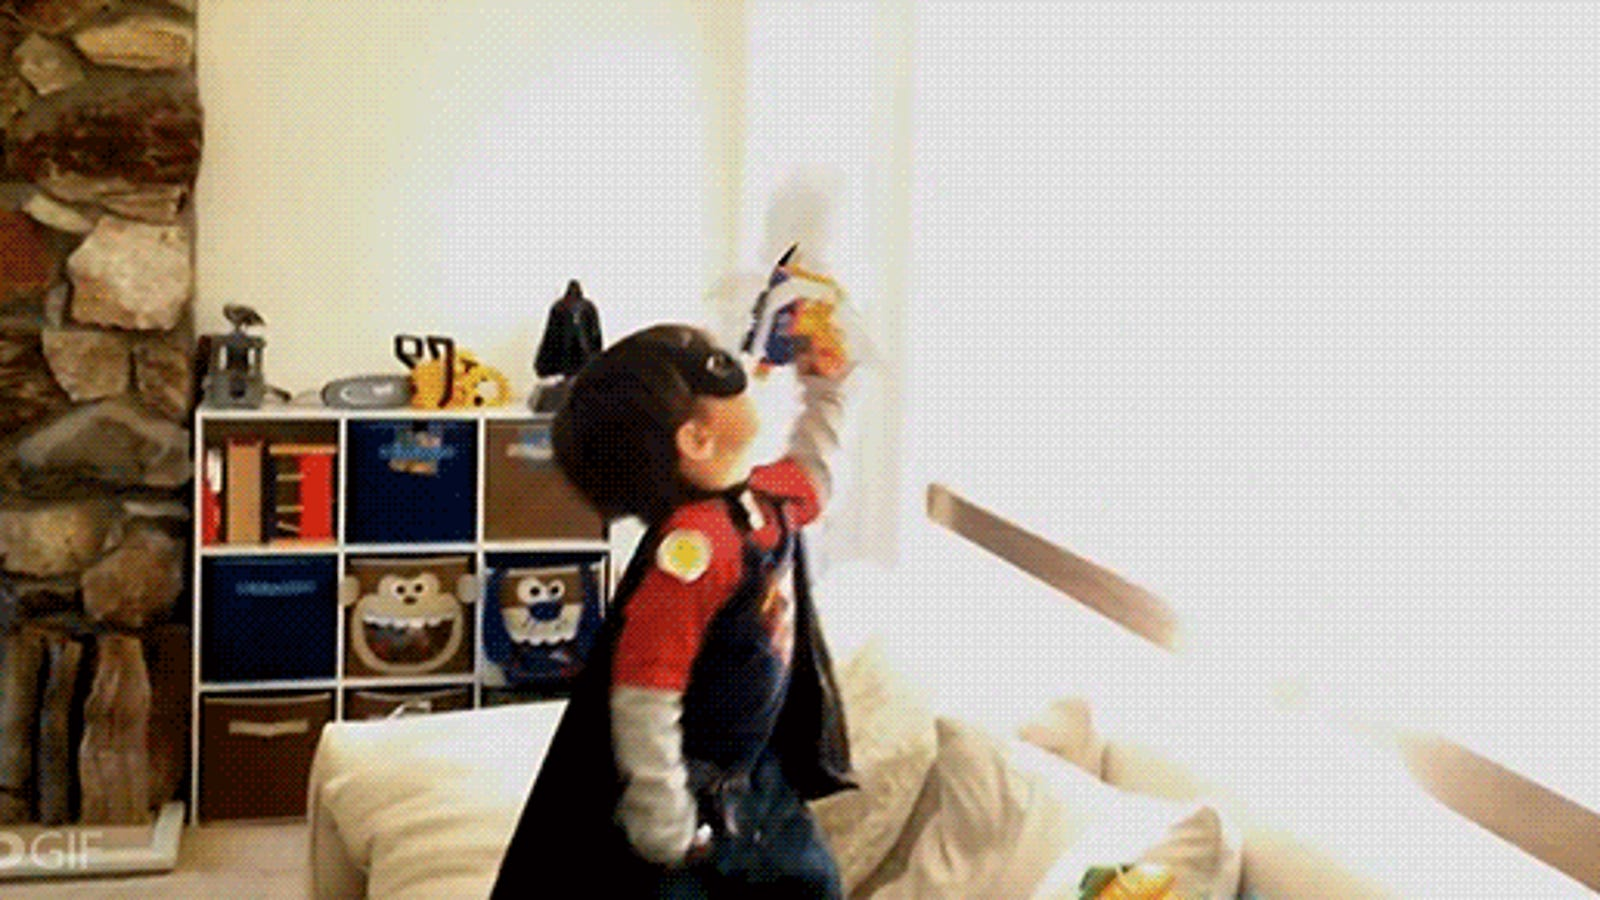 Awesome dad turns son into superhero using amazing special effects